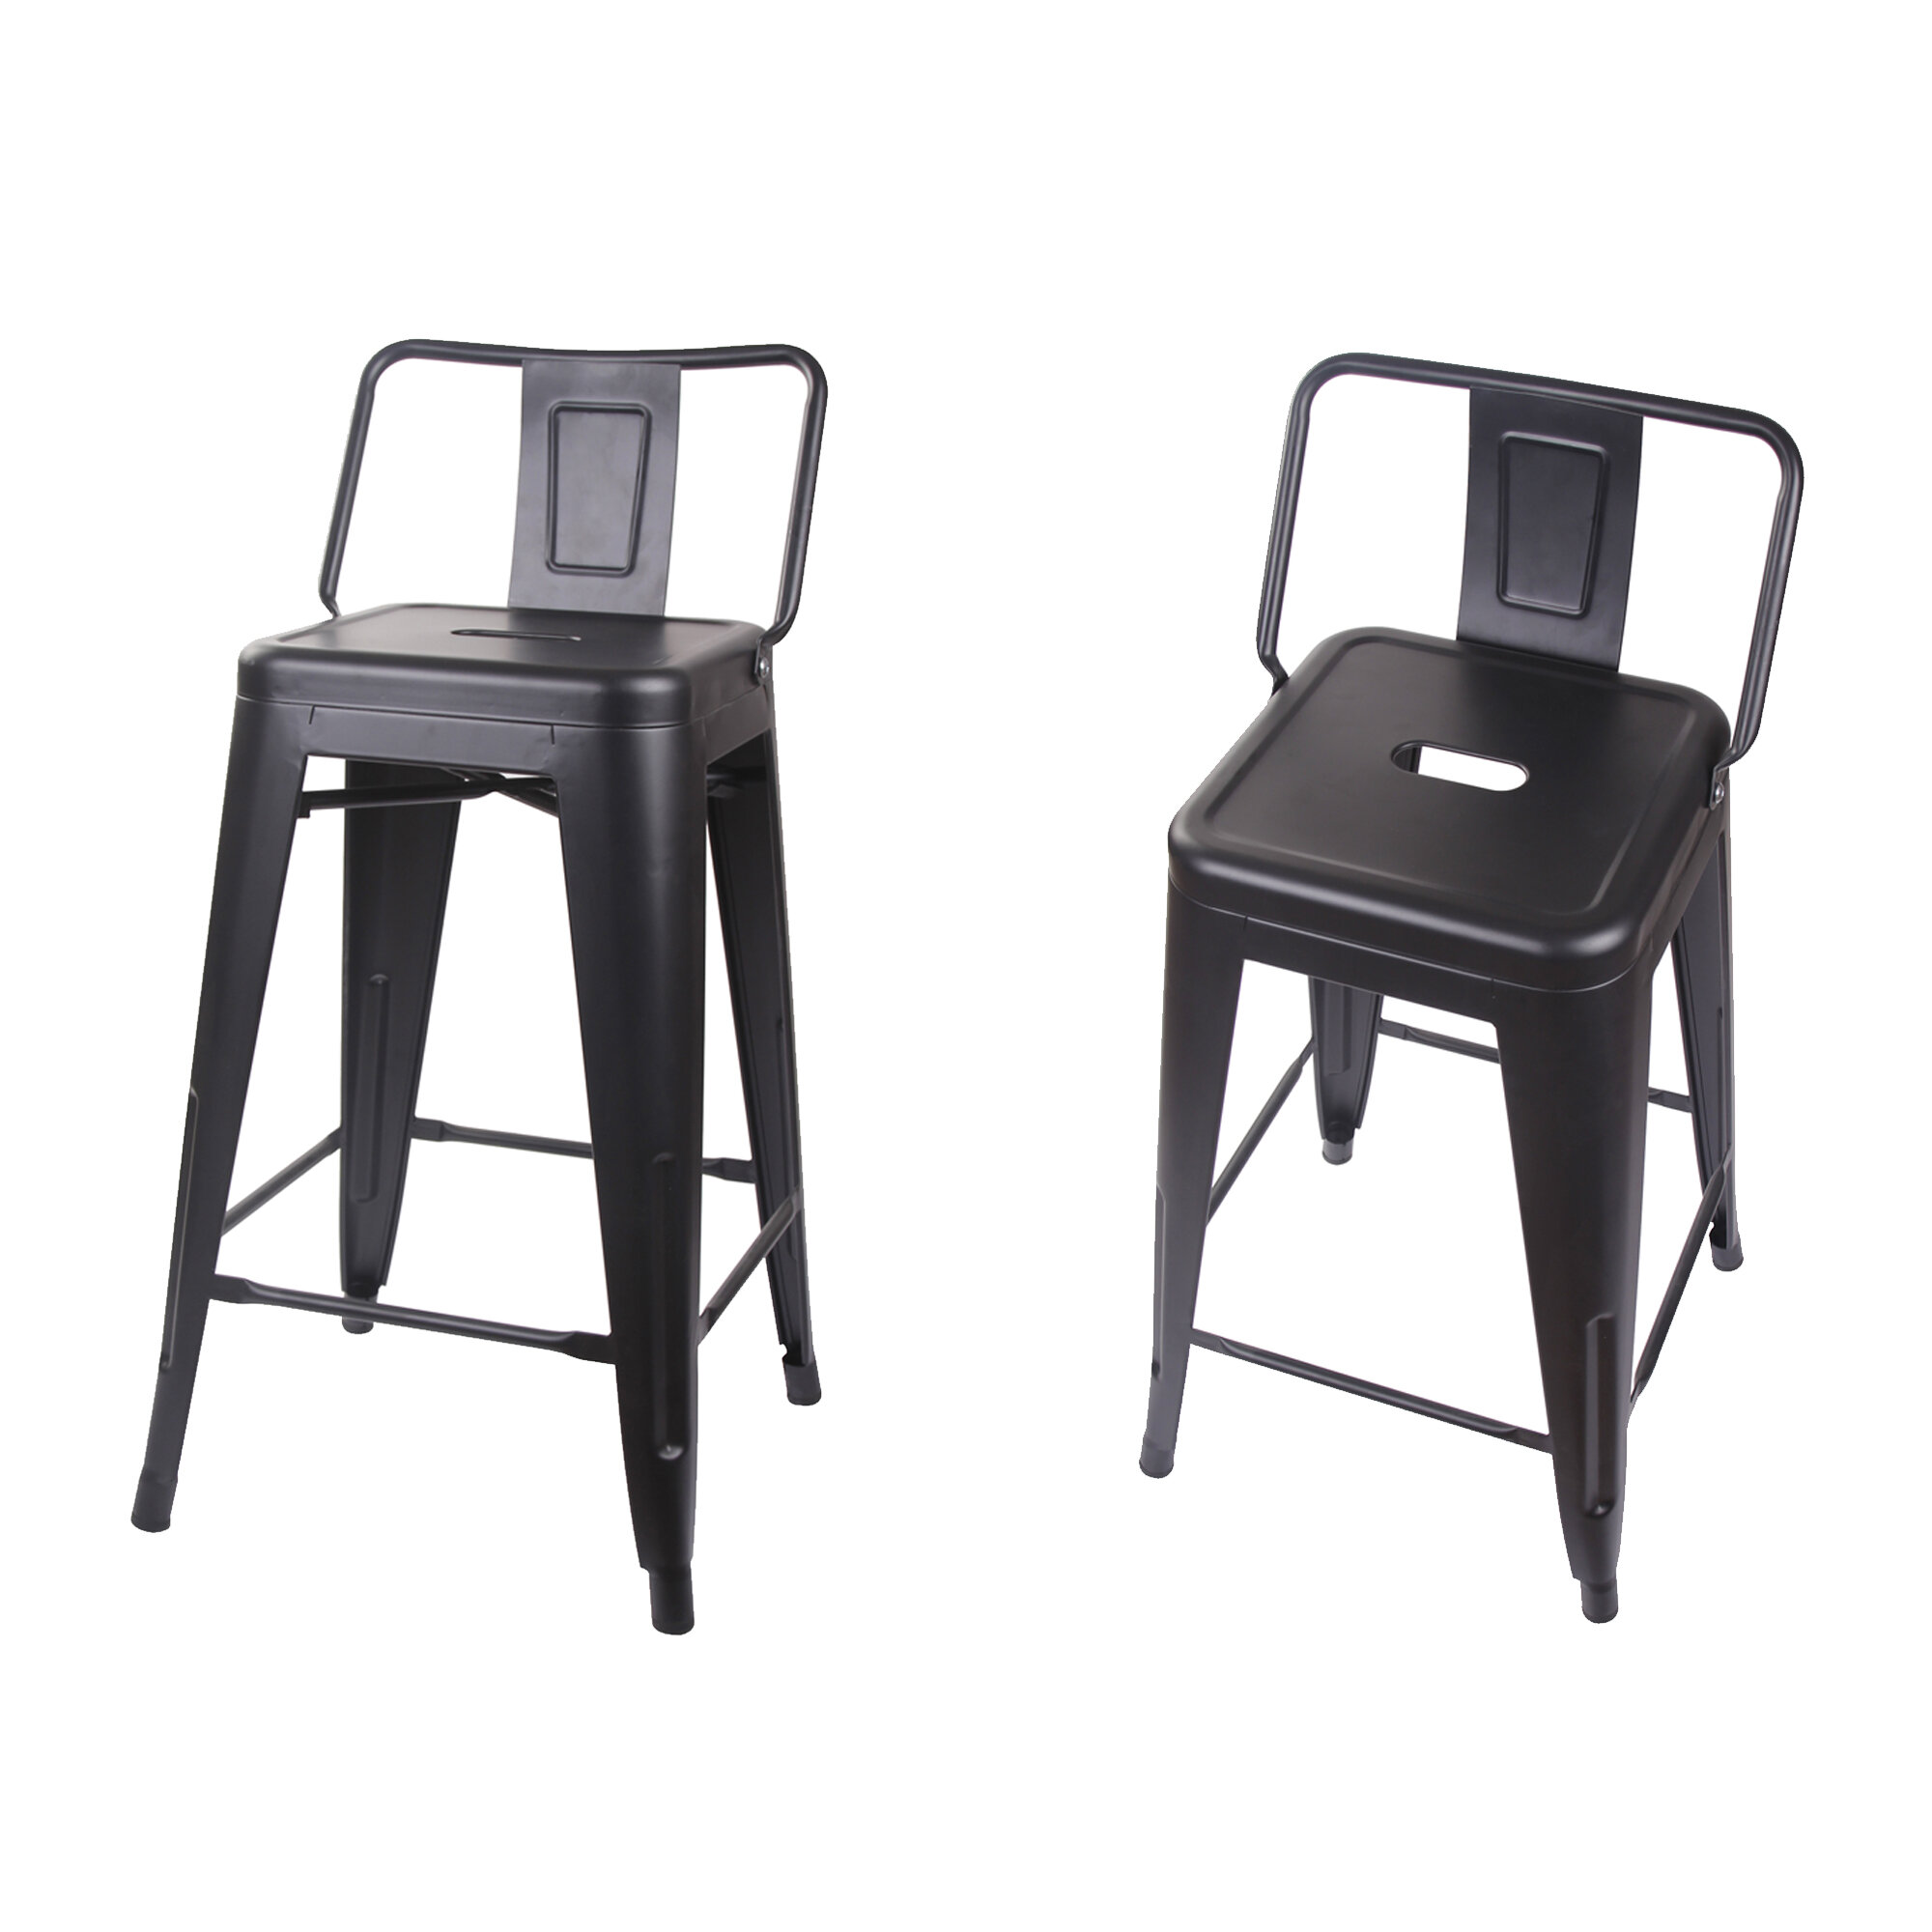 Excellent Williston Forge Capucine Bar Counter Stool Reviews Wayfair Onthecornerstone Fun Painted Chair Ideas Images Onthecornerstoneorg